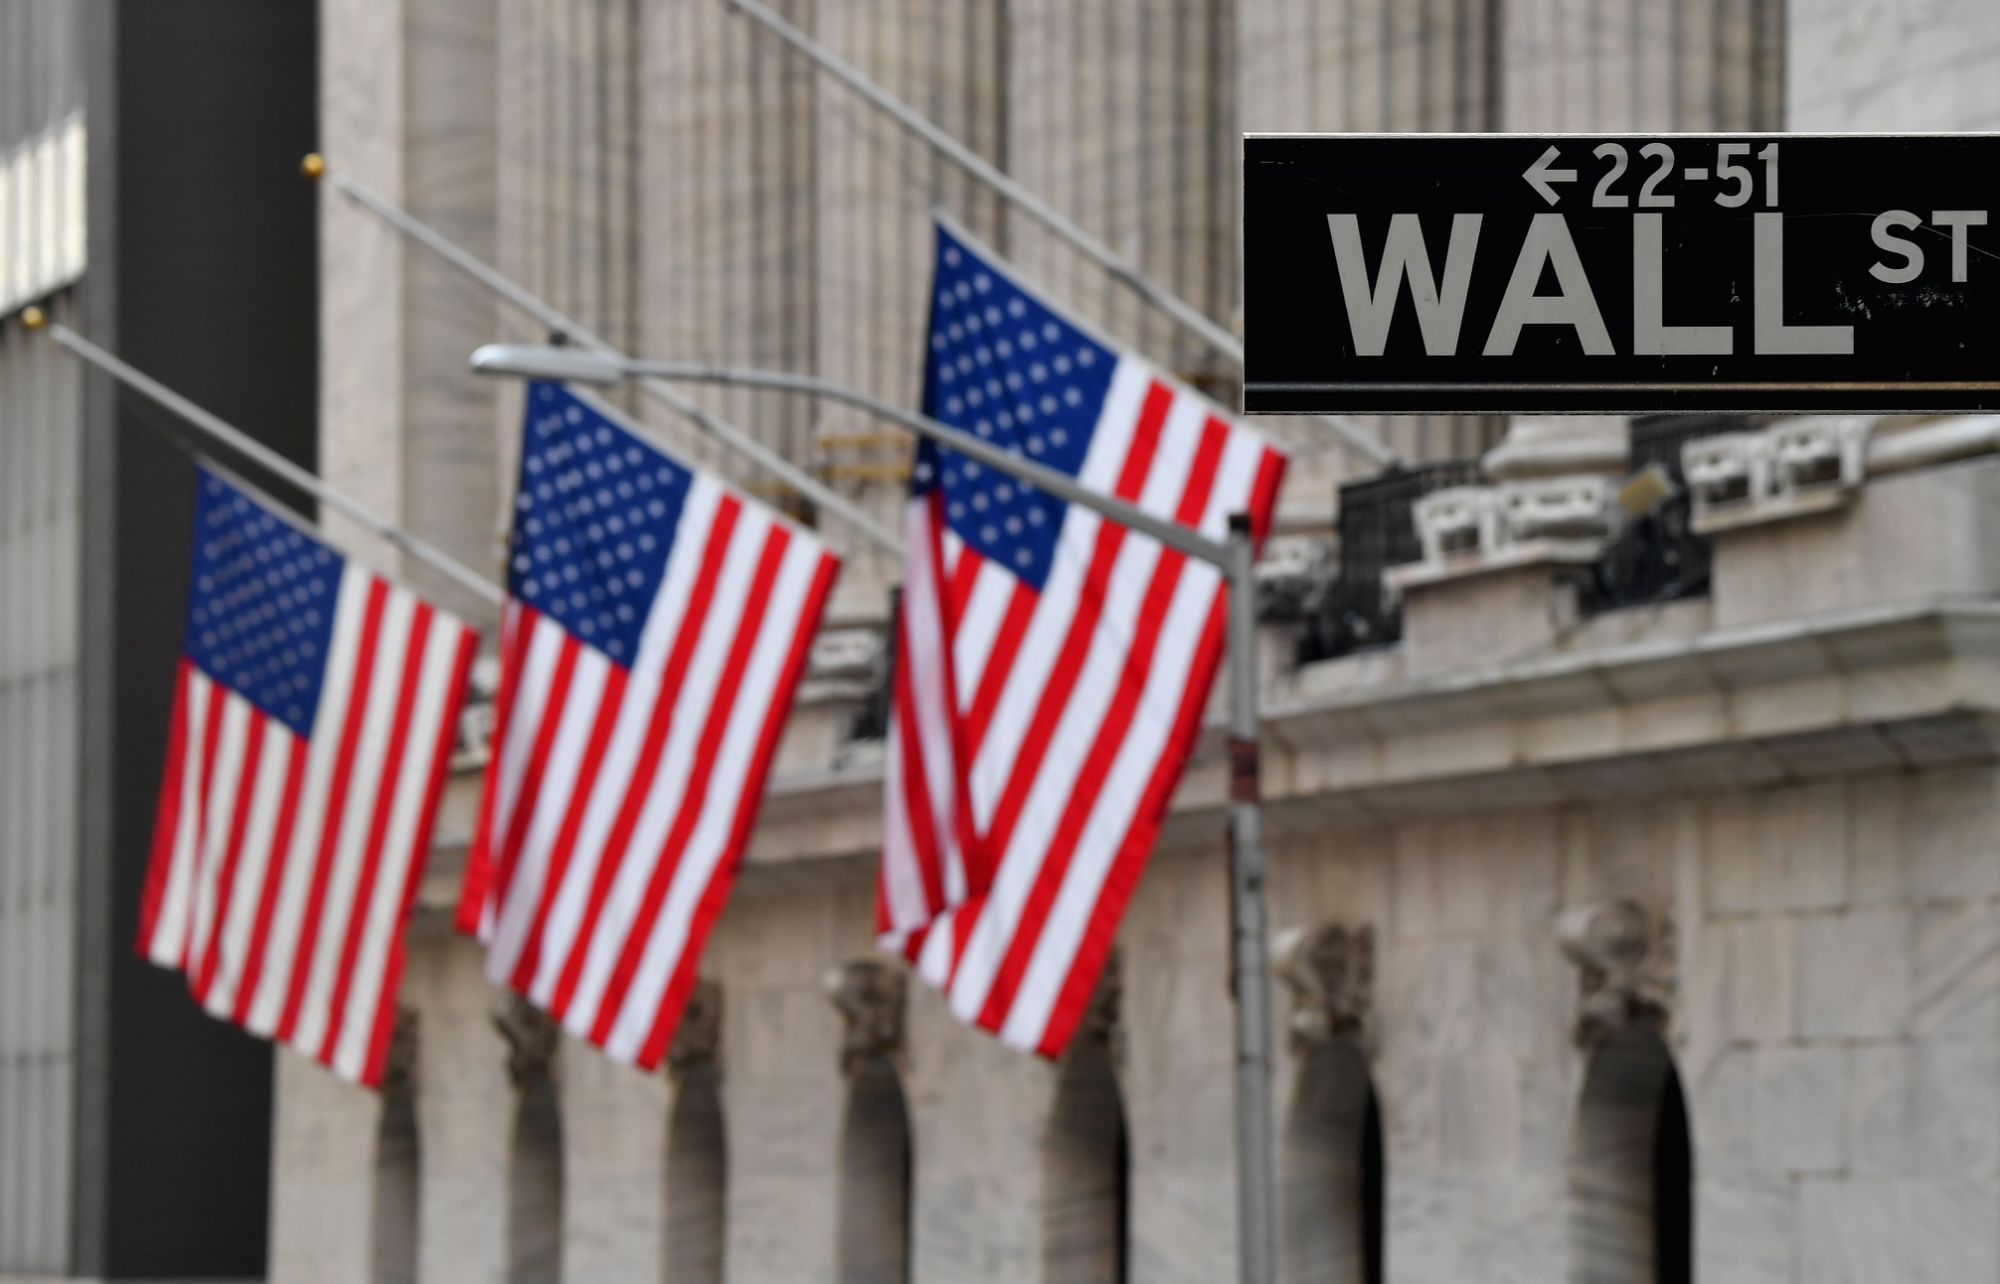 stock-market-news-live-updates:-stocks-fall-even-after-retail-sales-surge-past-expectations